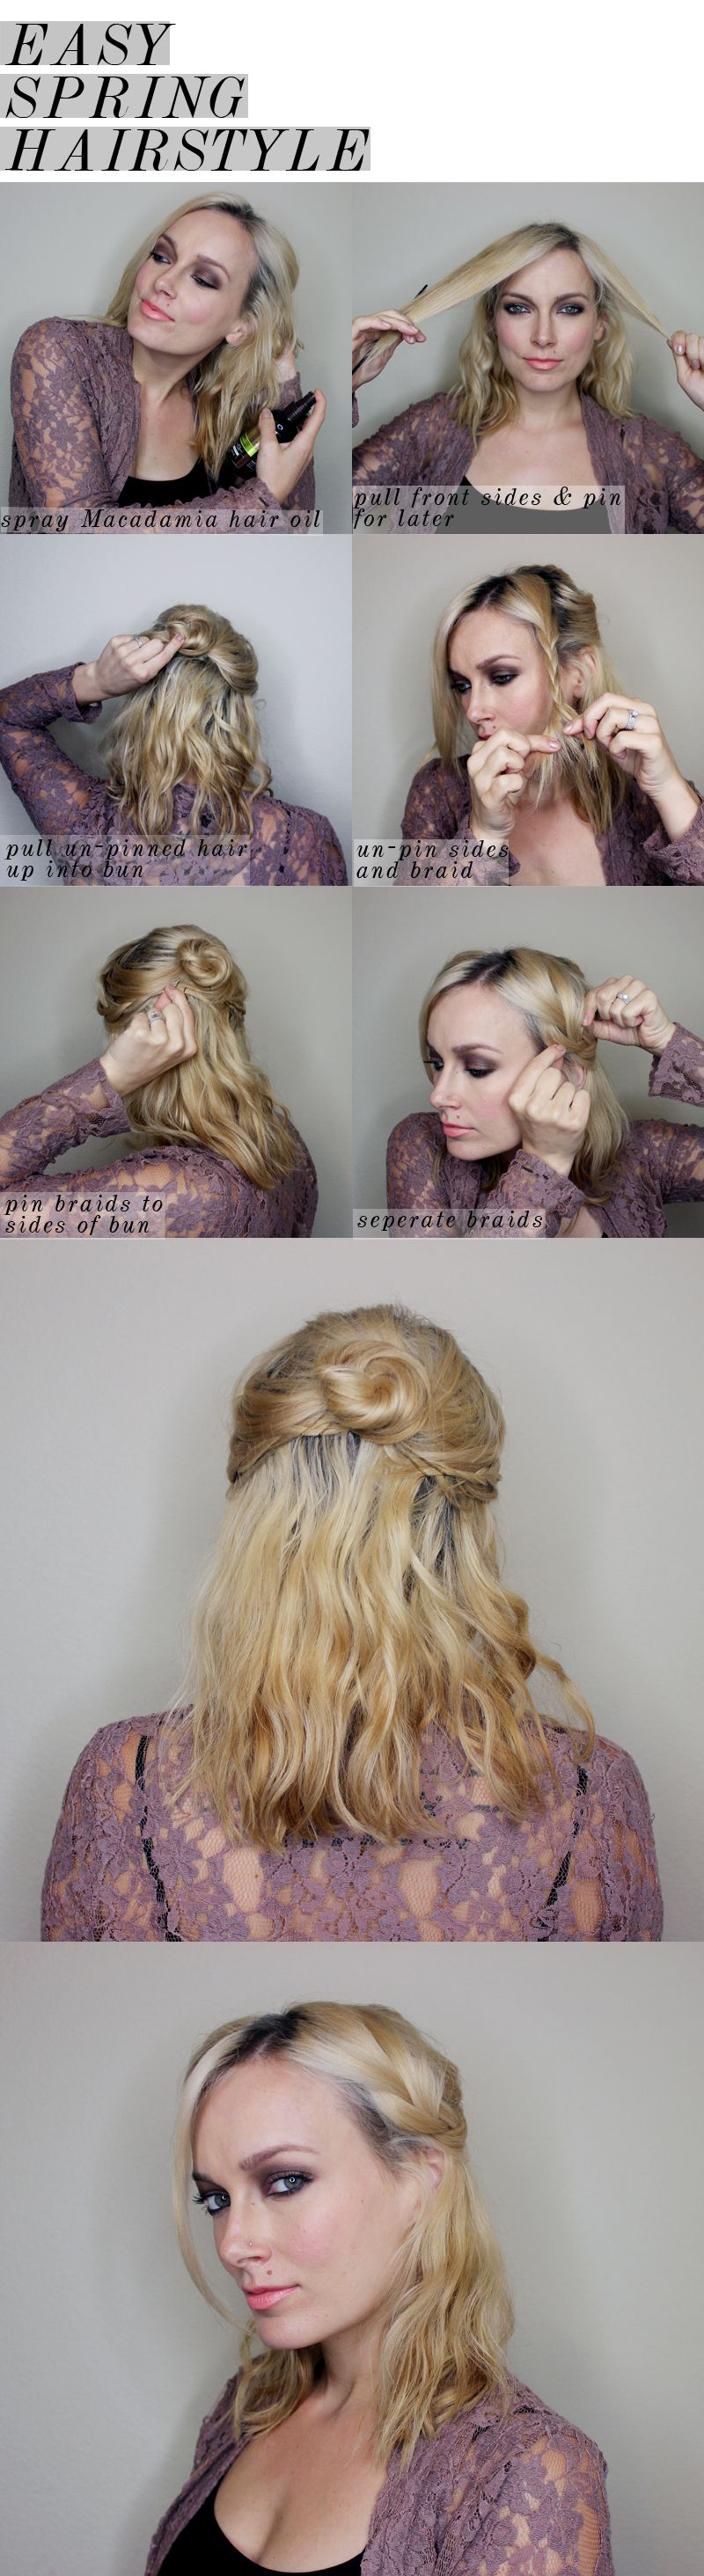 easy spring half updo for medium length hair | party